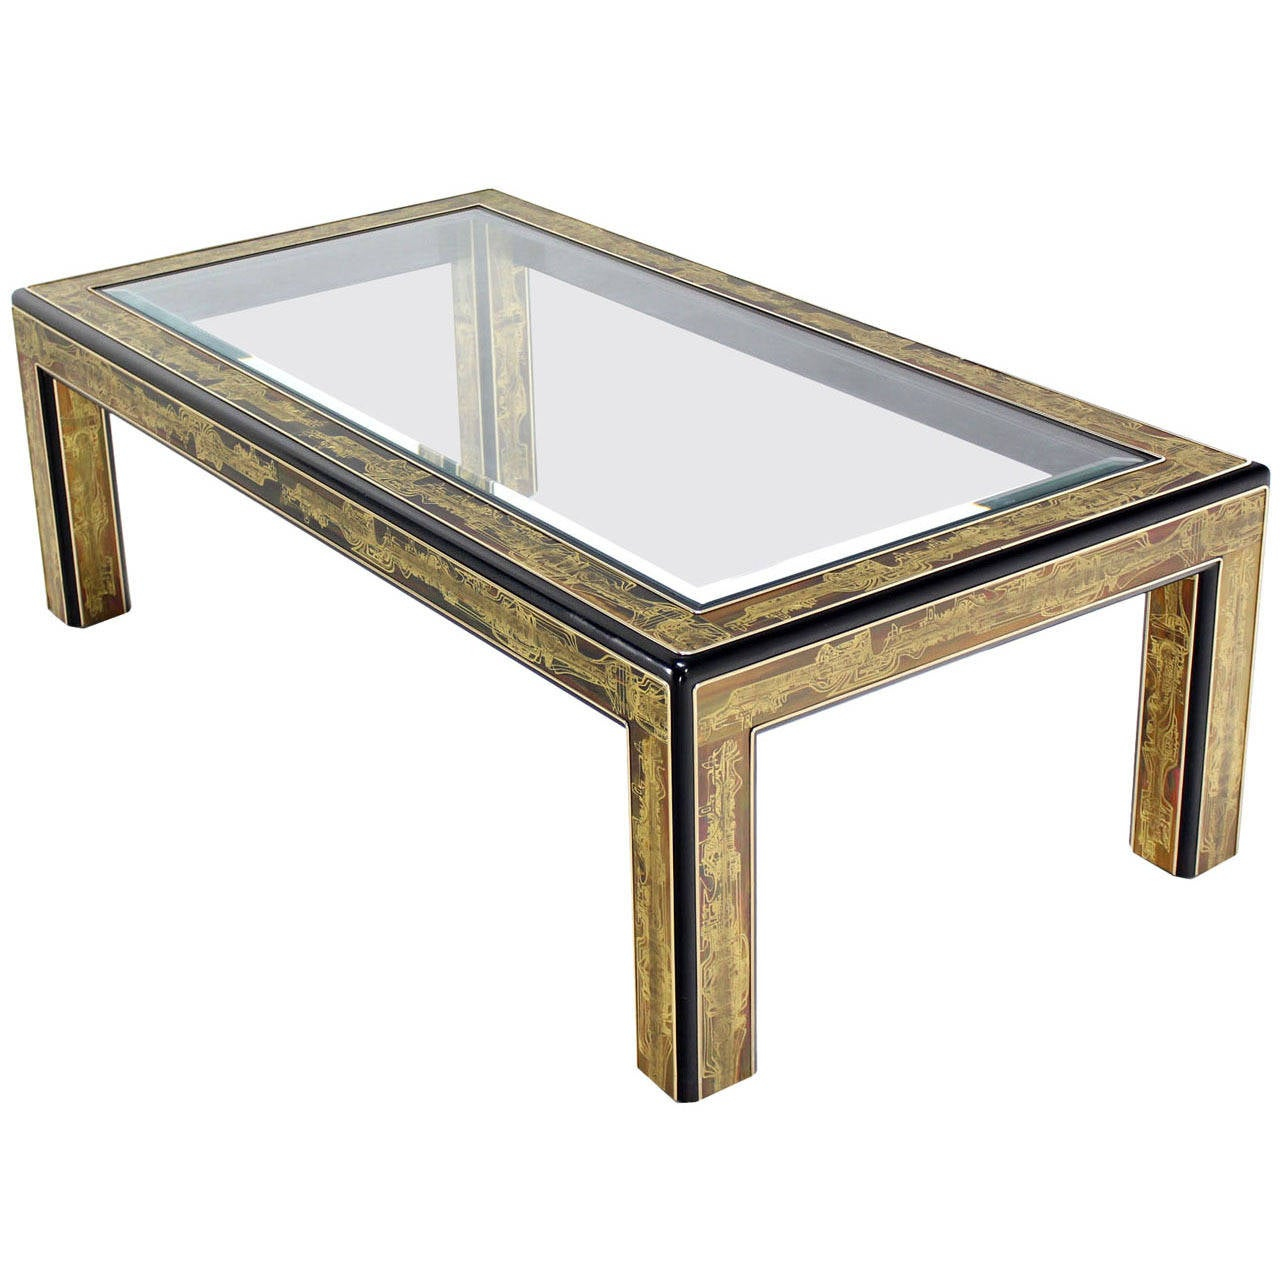 Rectangular glass top brass and wood base coffee table by for Rectangular coffee table with glass top